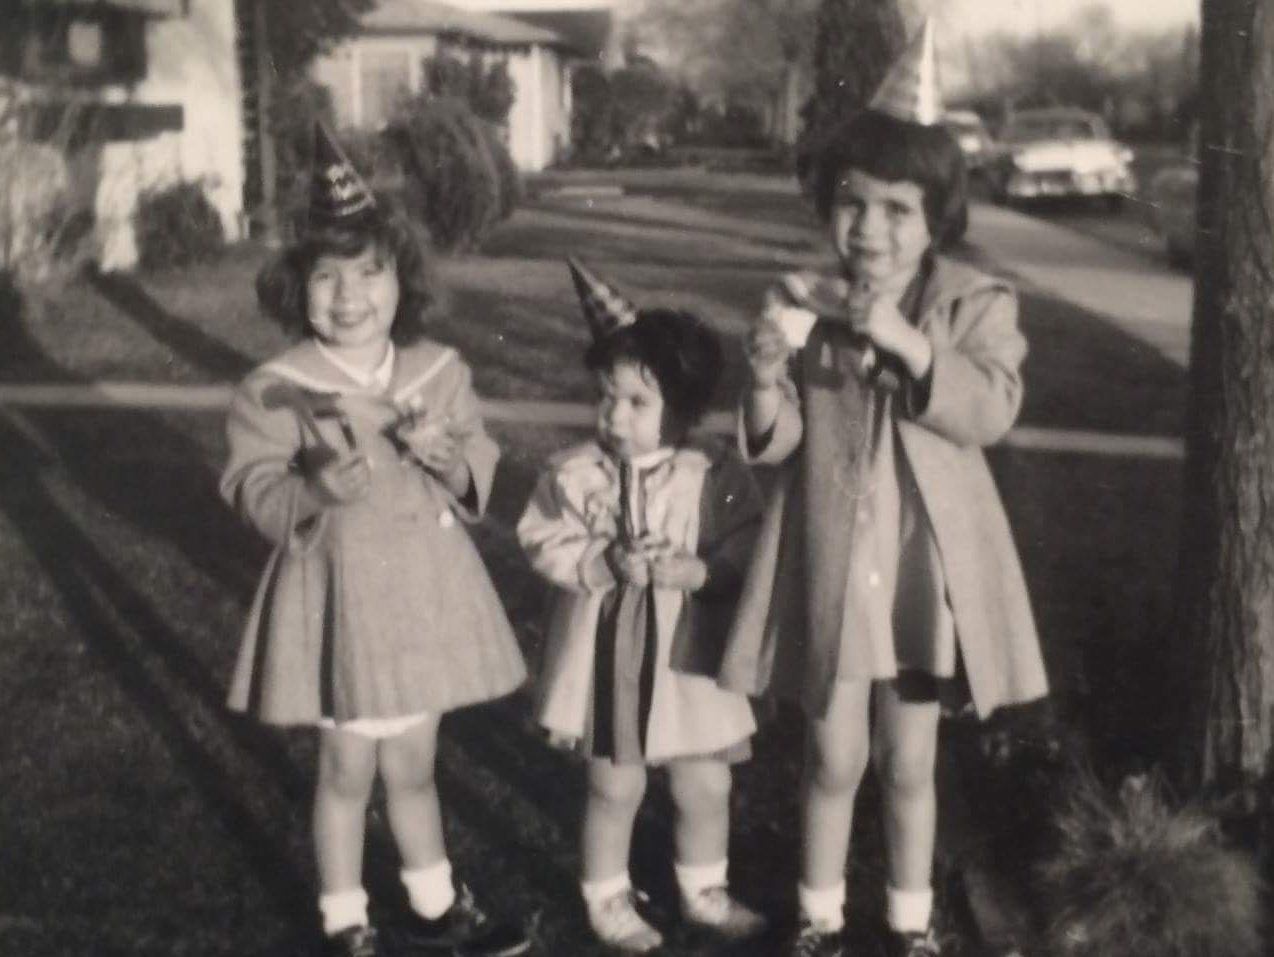 Beth Singer (left) with her sisters Amy (center) and Lori (right), who has schizophrenia